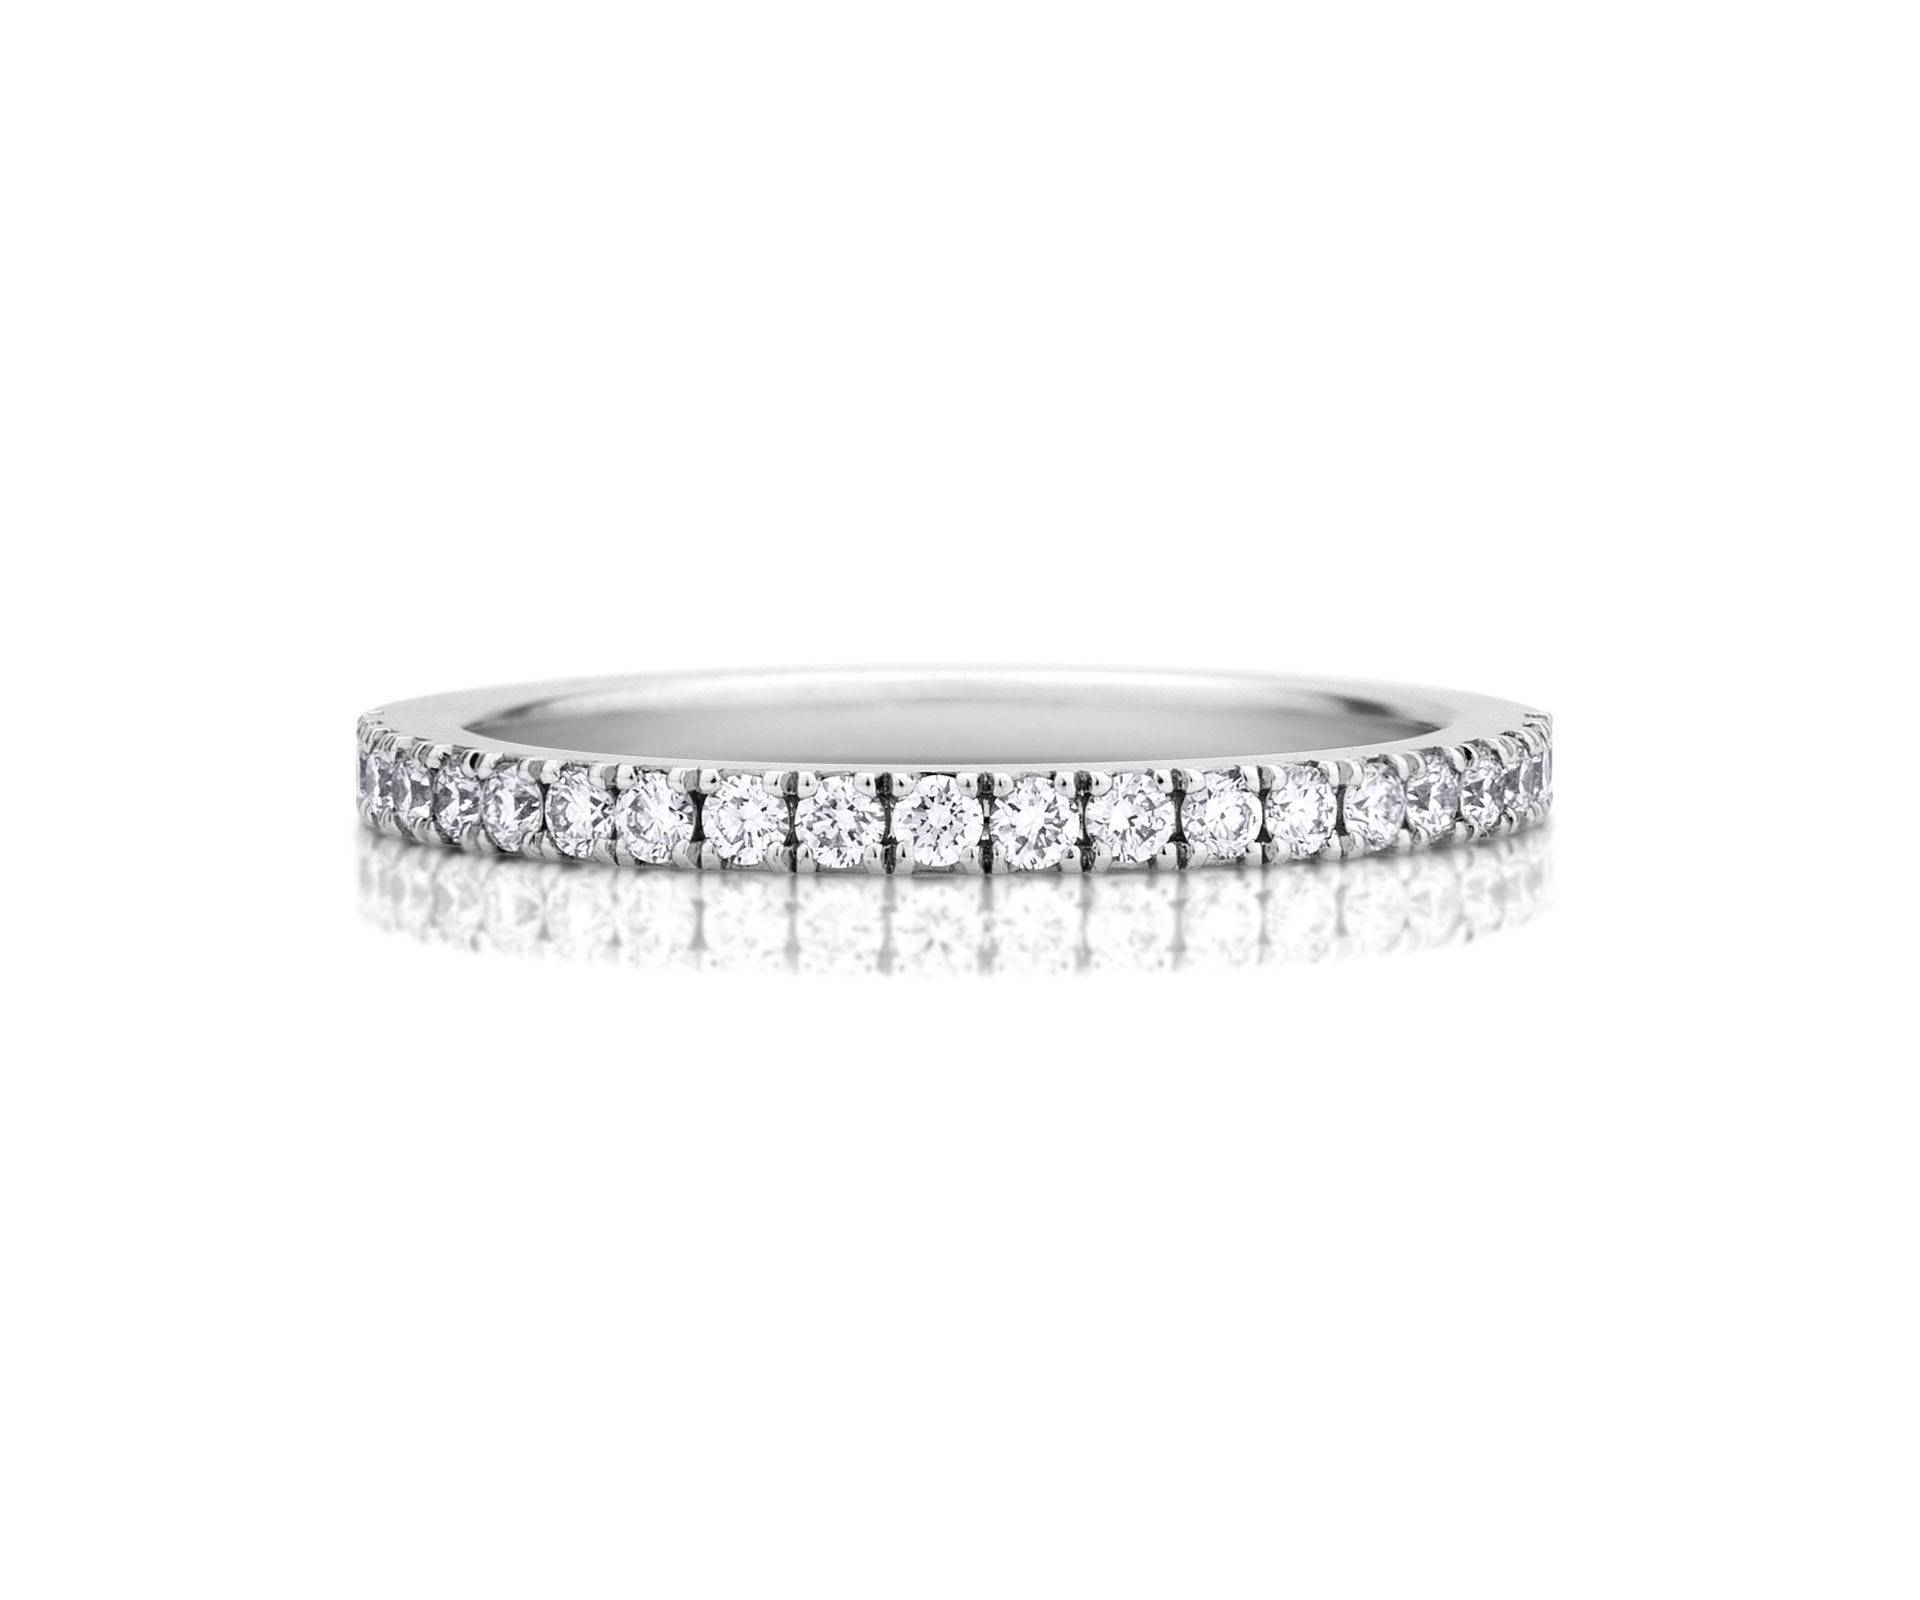 Wedding Bands | Bridal Pertaining To Wedding Rings With Diamond Band (Gallery 5 of 15)